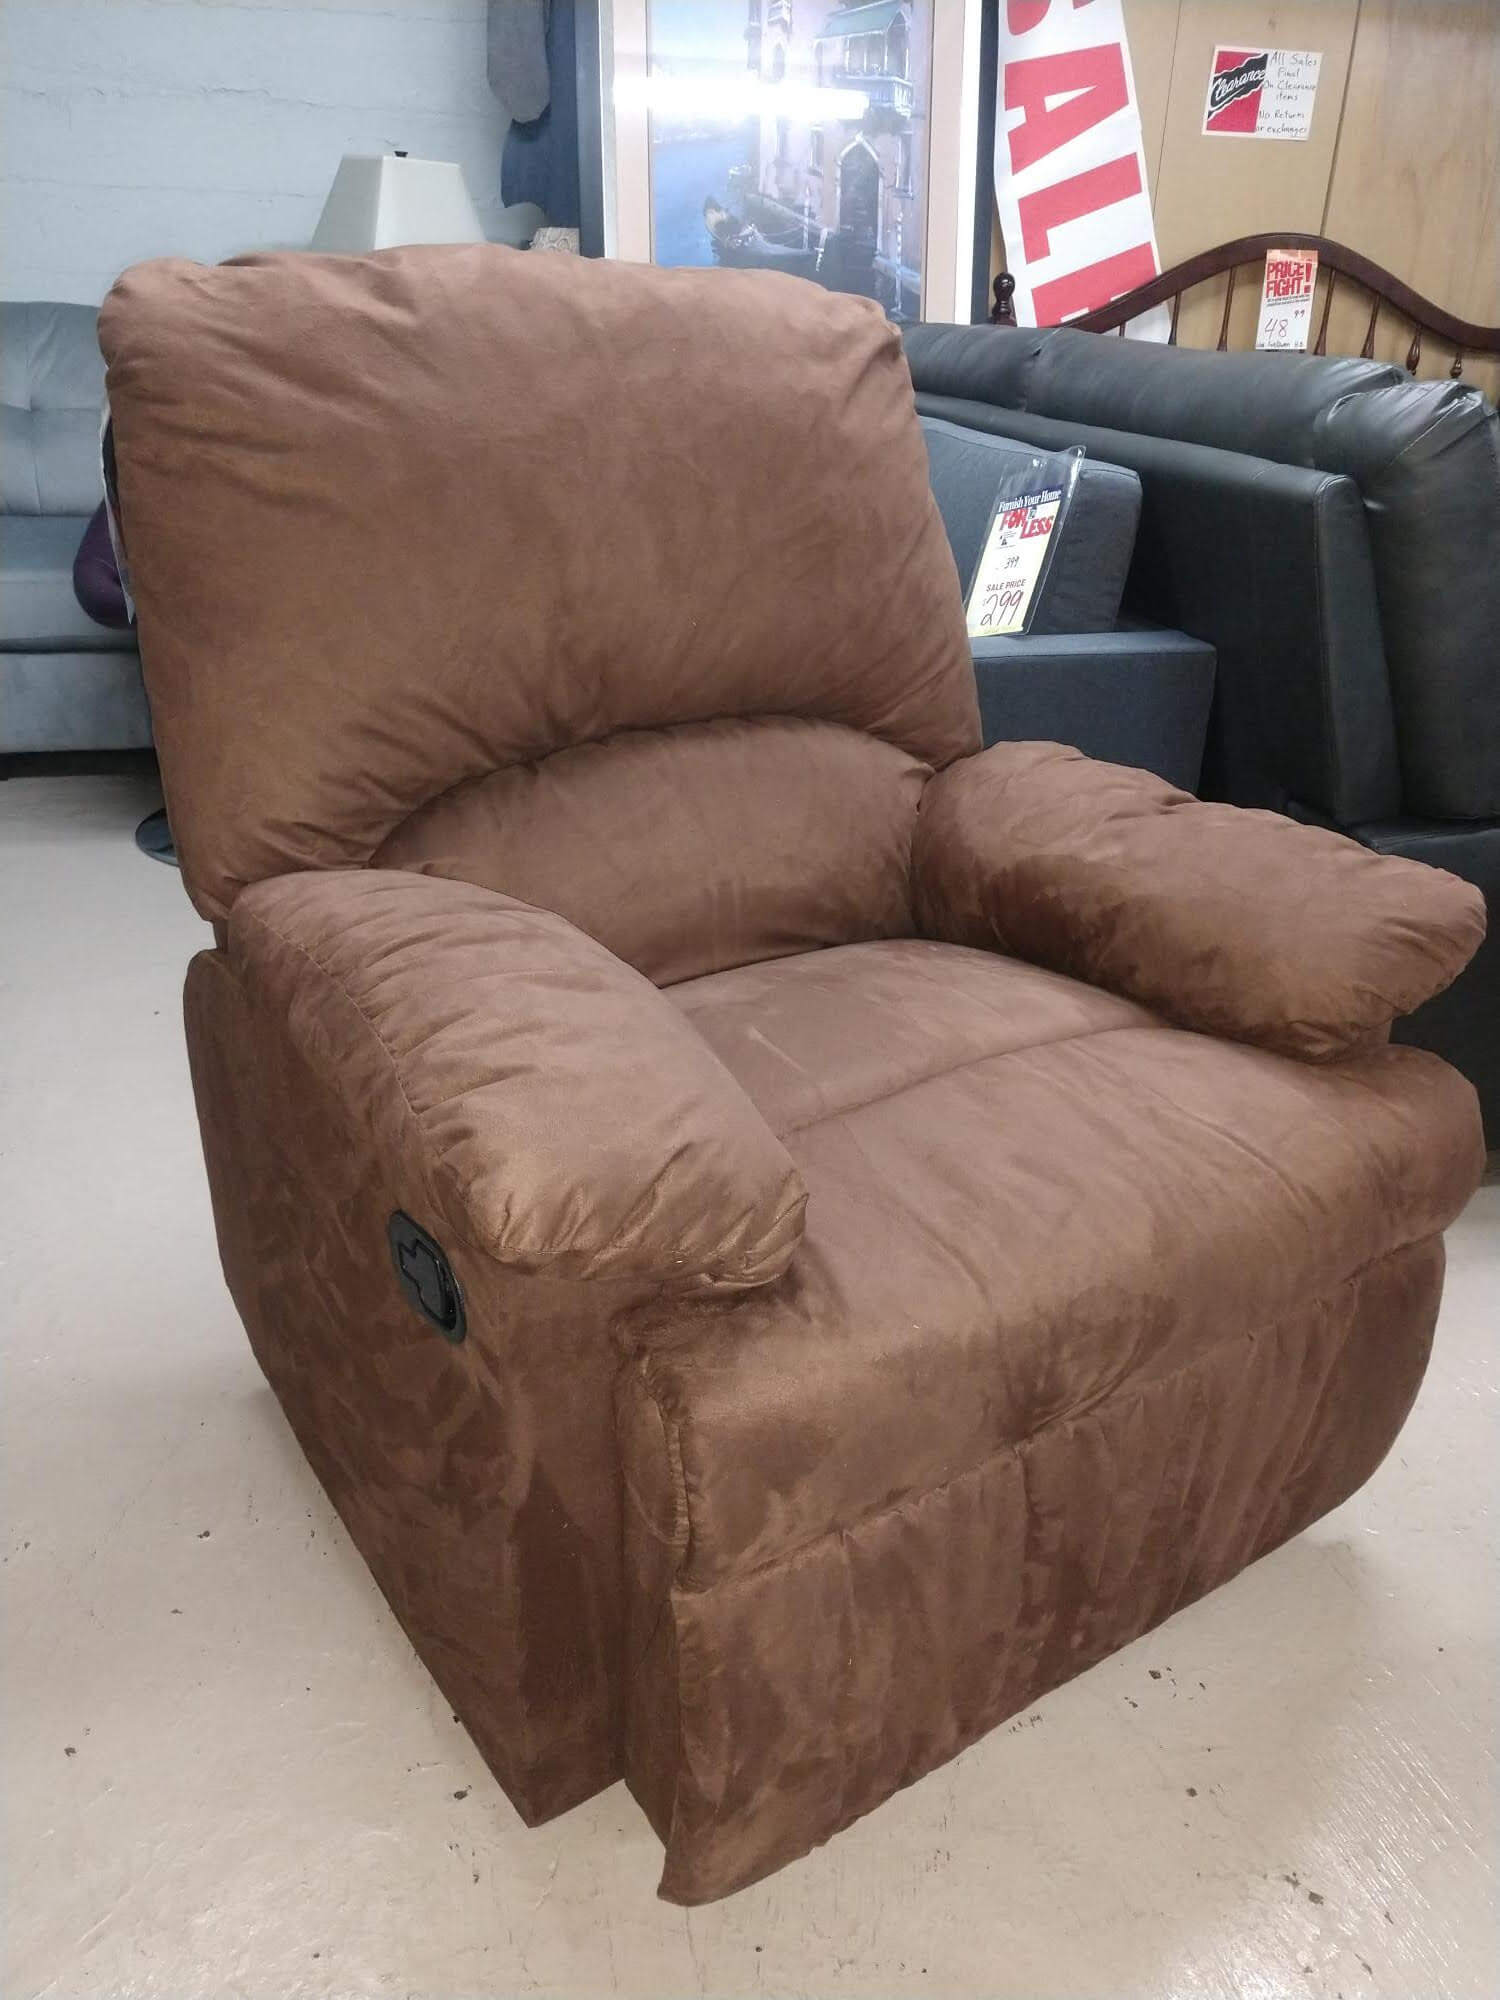 New Recliners From $80